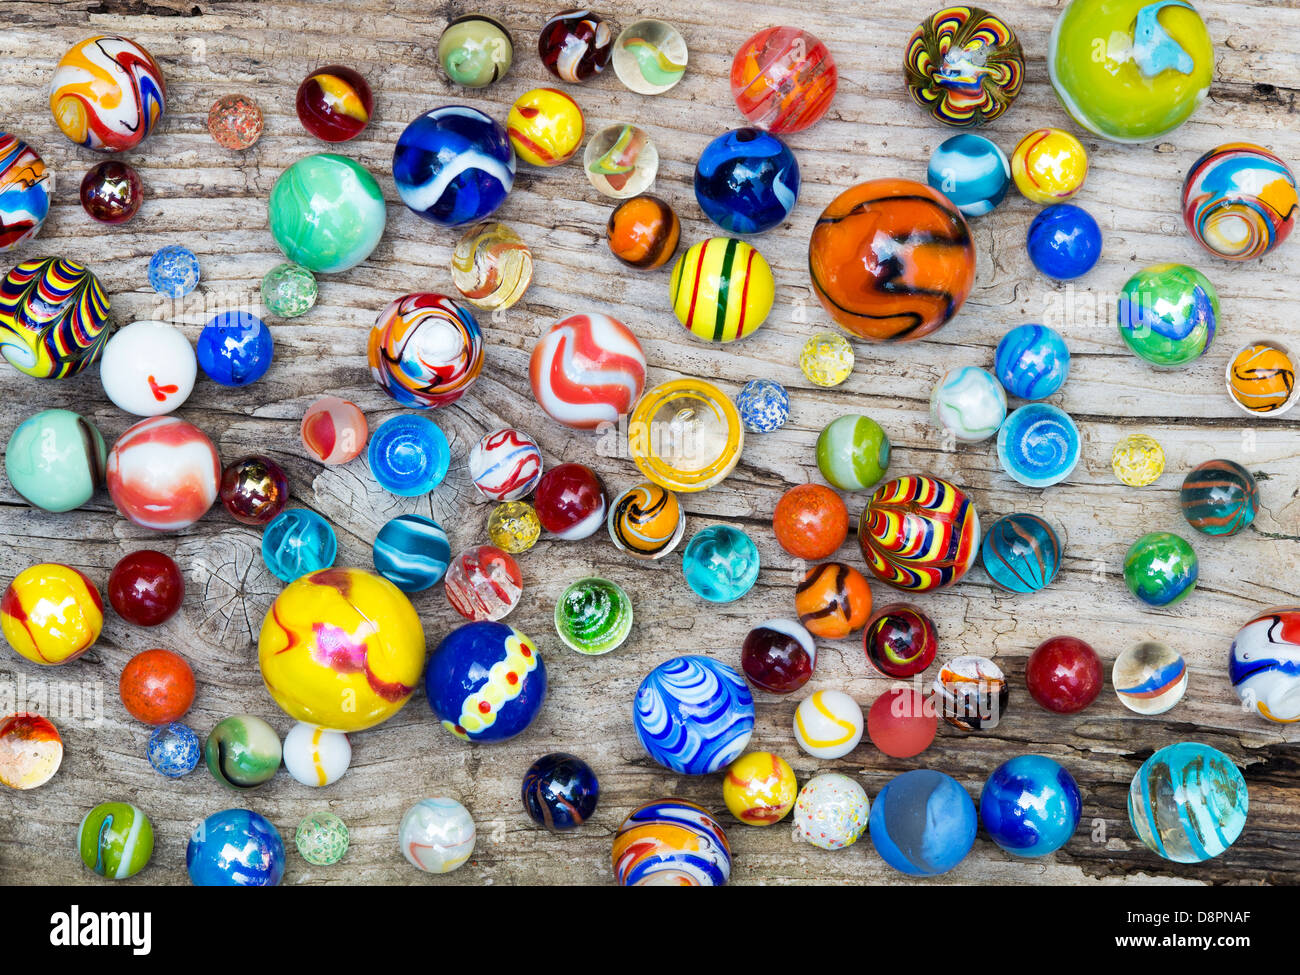 Colourful marbles on old wood - Stock Image